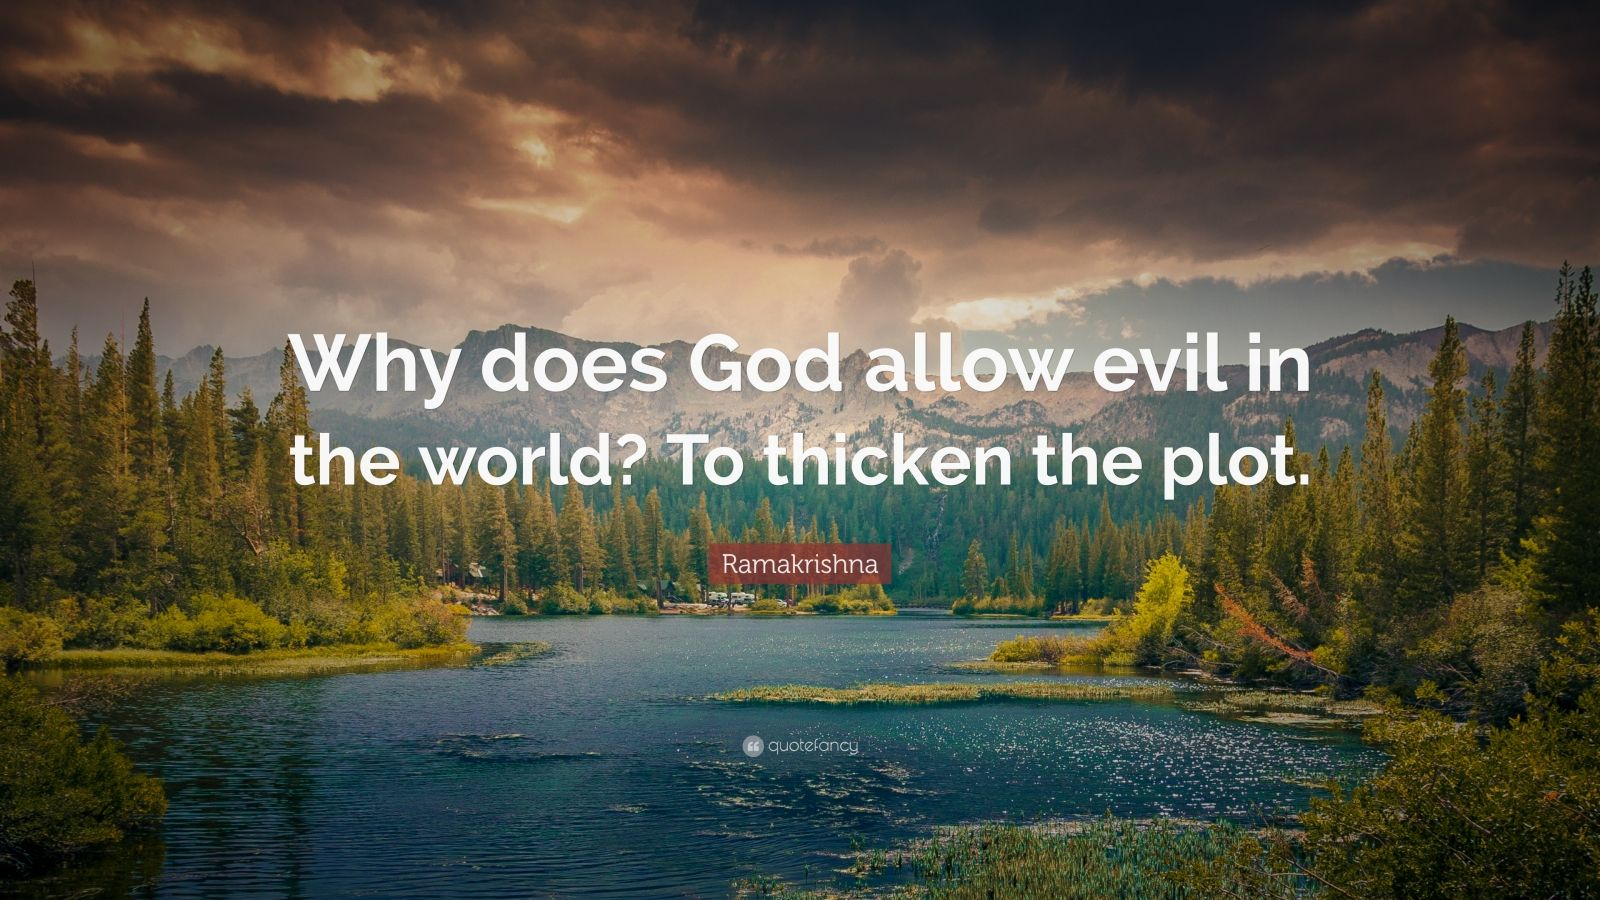 why god allows evil So, if both of these are true, why does god allow evil if god has the power to prevent evil, and desires to prevent evil, why does he not prevent evil perhaps a good way to look at this issue would be to consider some alternative situations for how people might have god run the world.